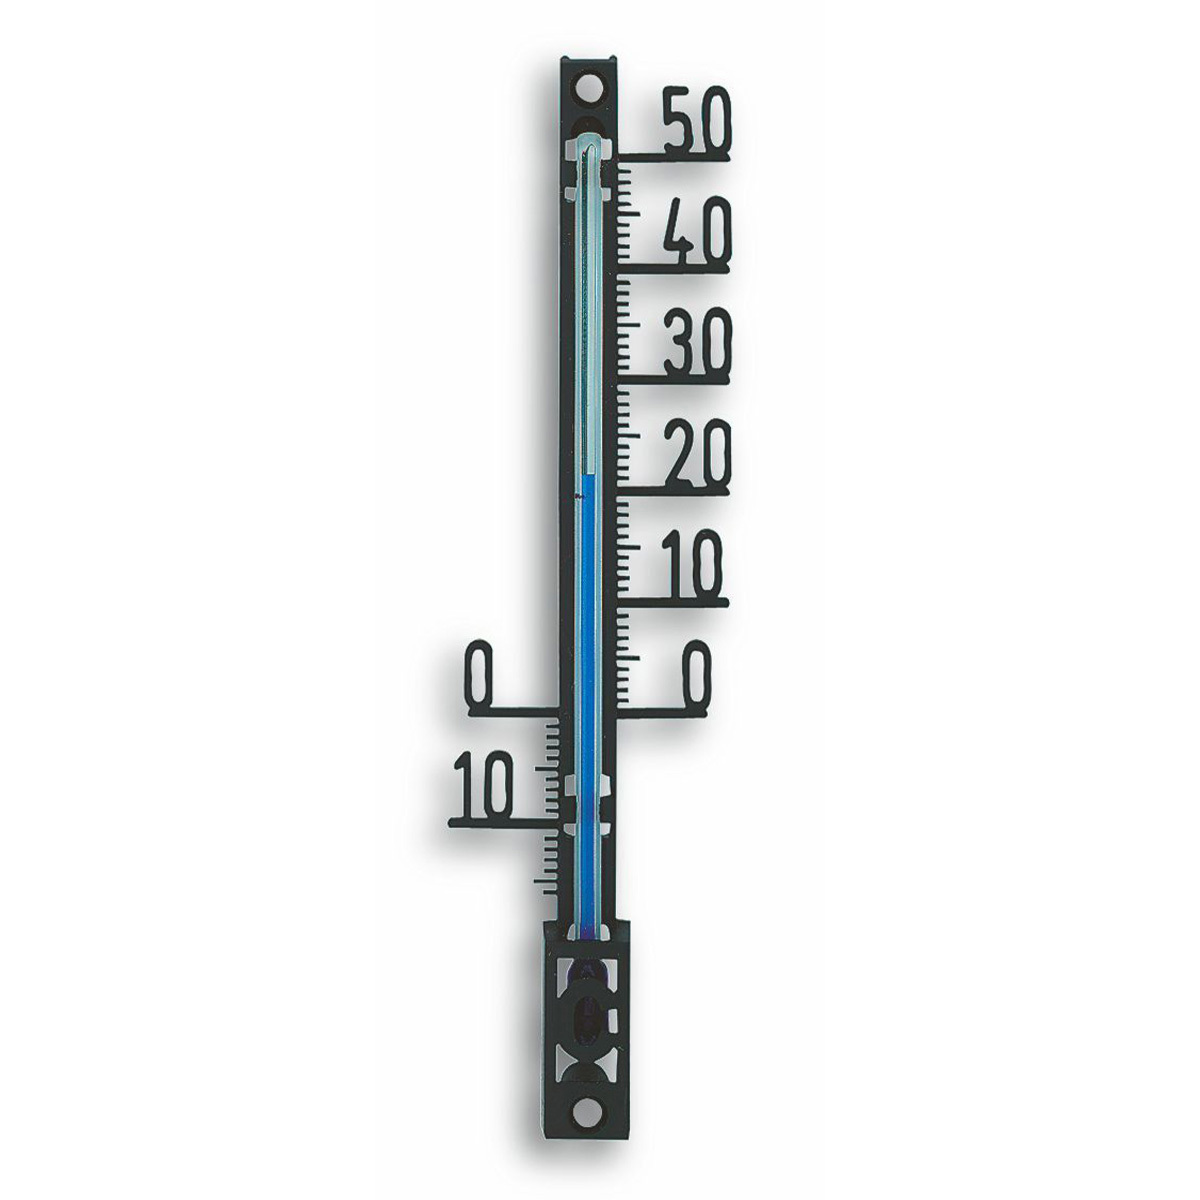 12-6000-01-analoges-aussenthermometer-1200x1200px.jpg